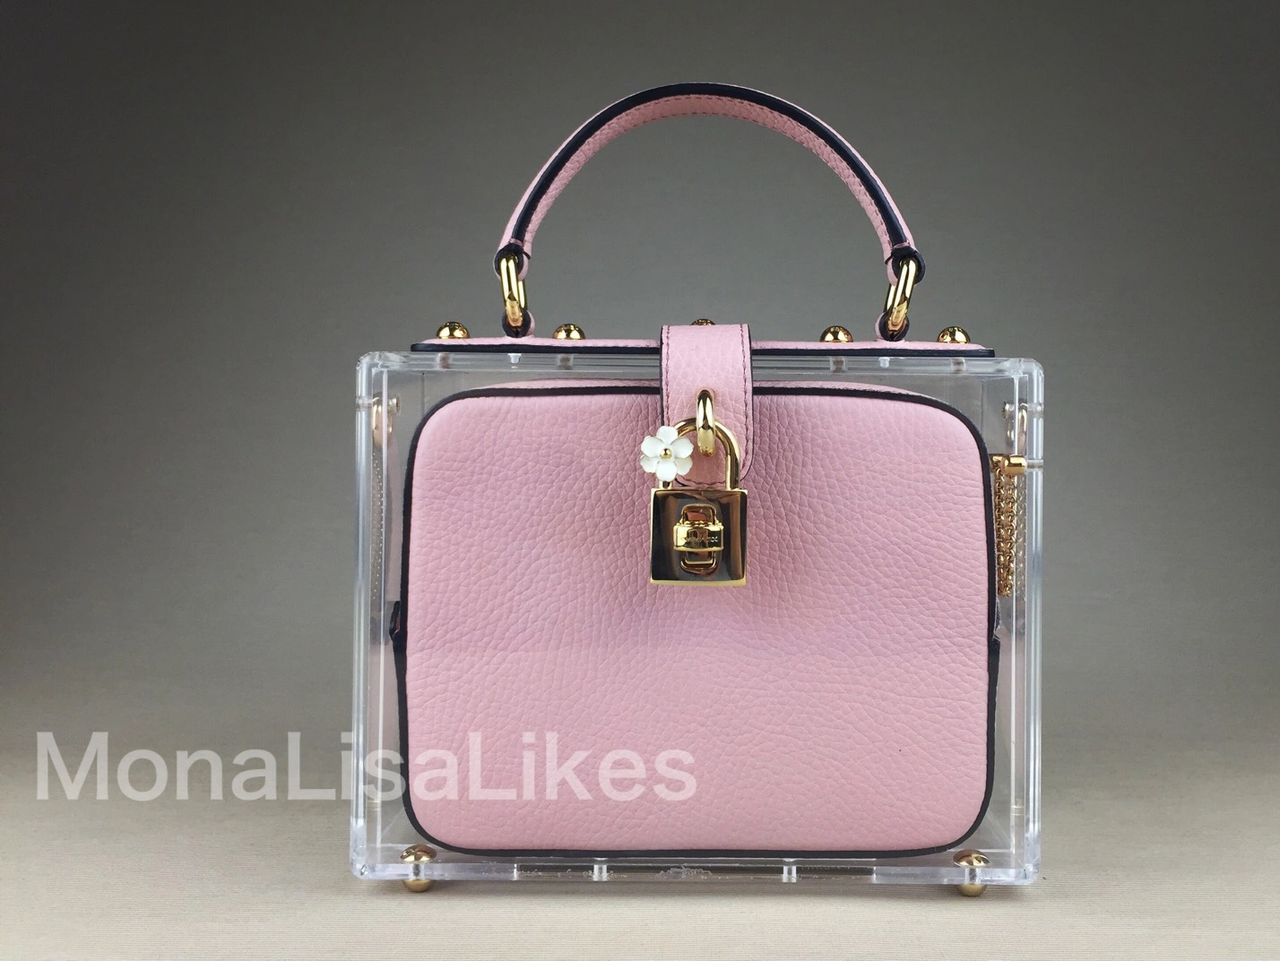 DOLCE & GABBANA plexiglass box bag